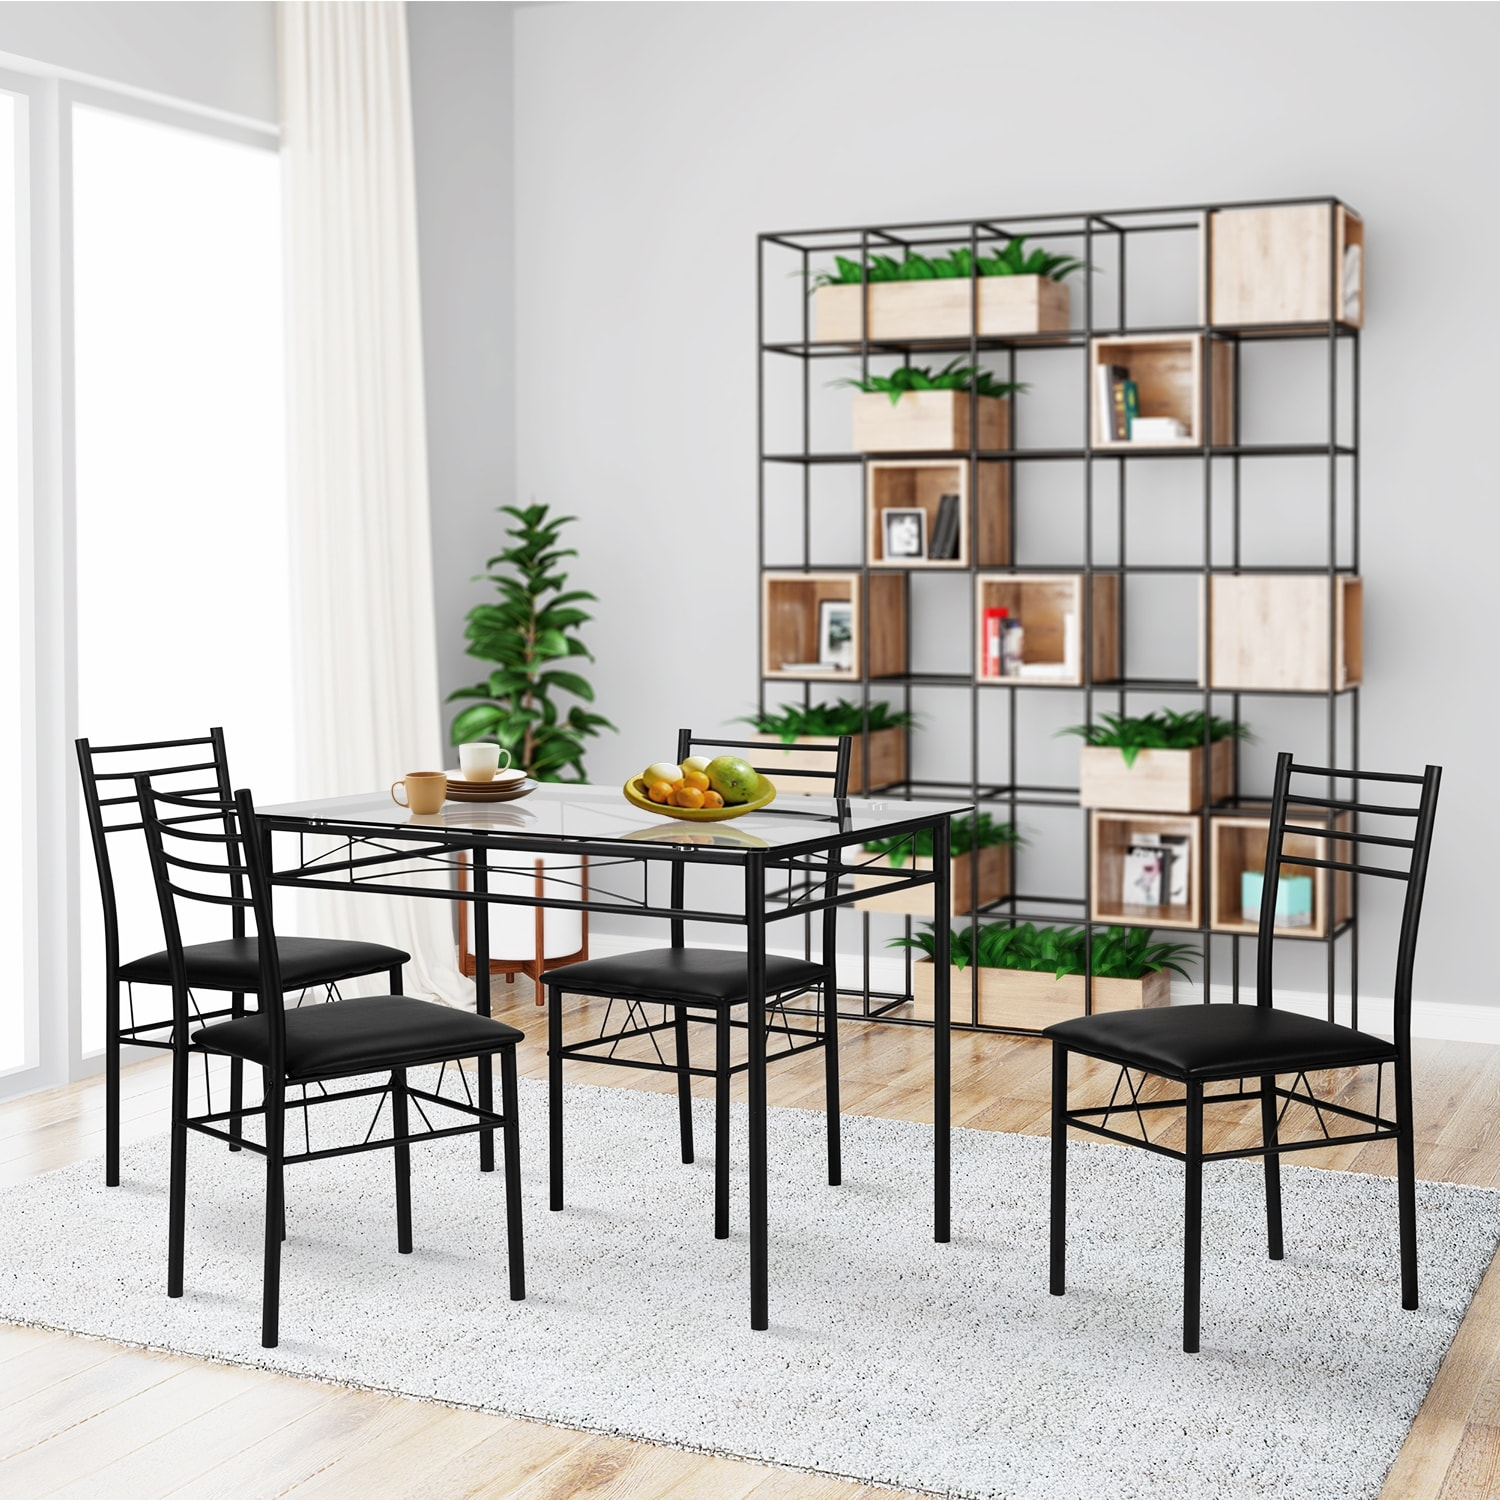 Kitchen Dining Table Set,Glass Table And 4 Chairs(Black/Silver)   Free  Shipping Today   Overstock   24647840